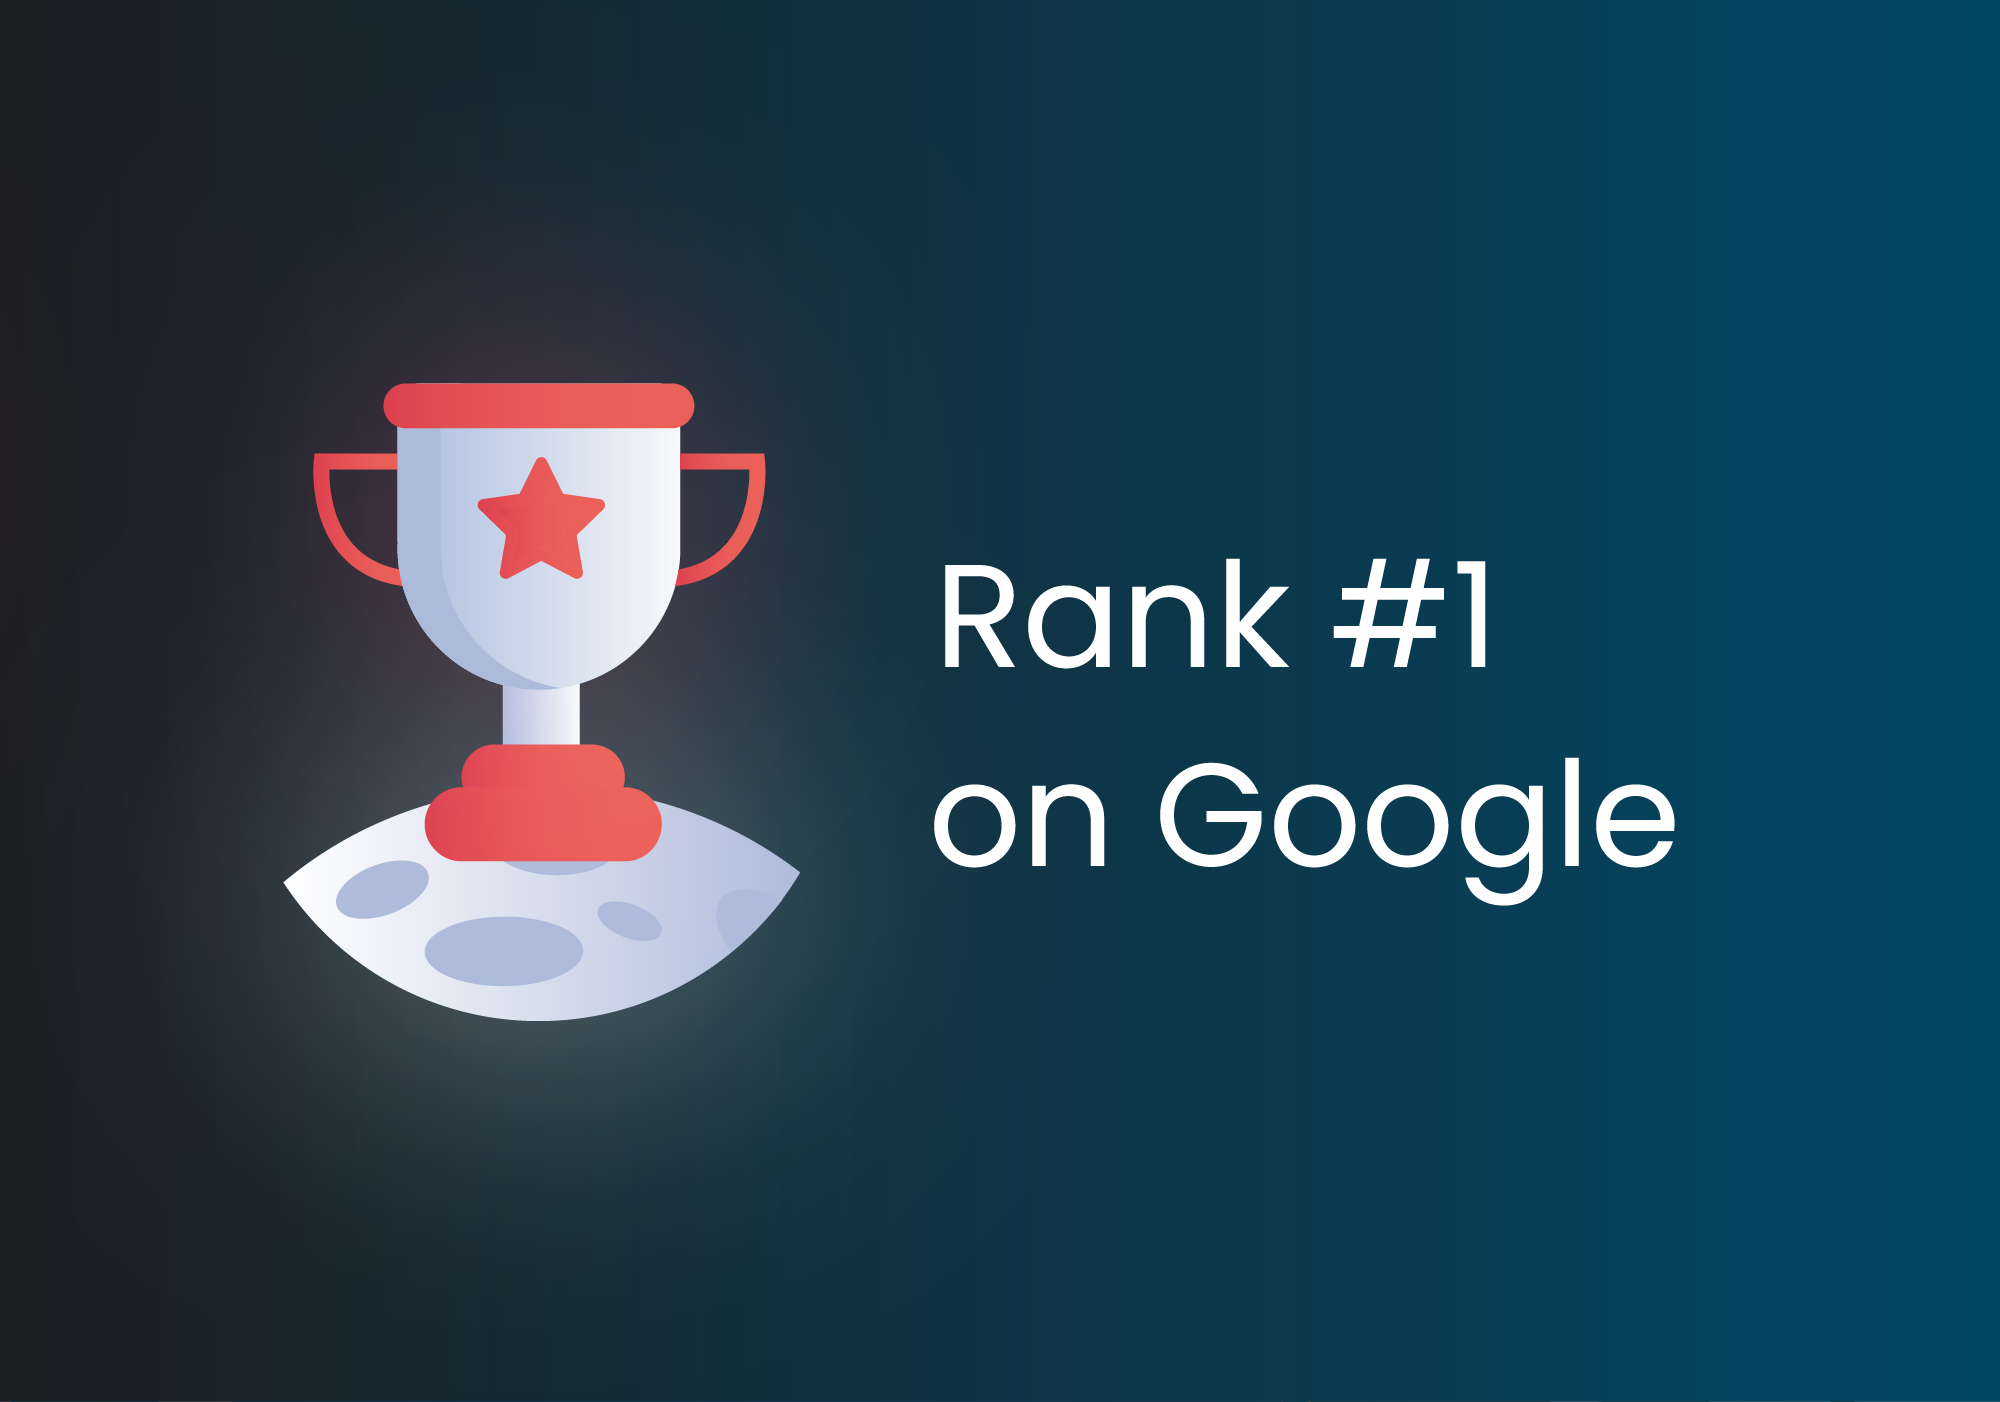 Trophy for ranking #1 on Google